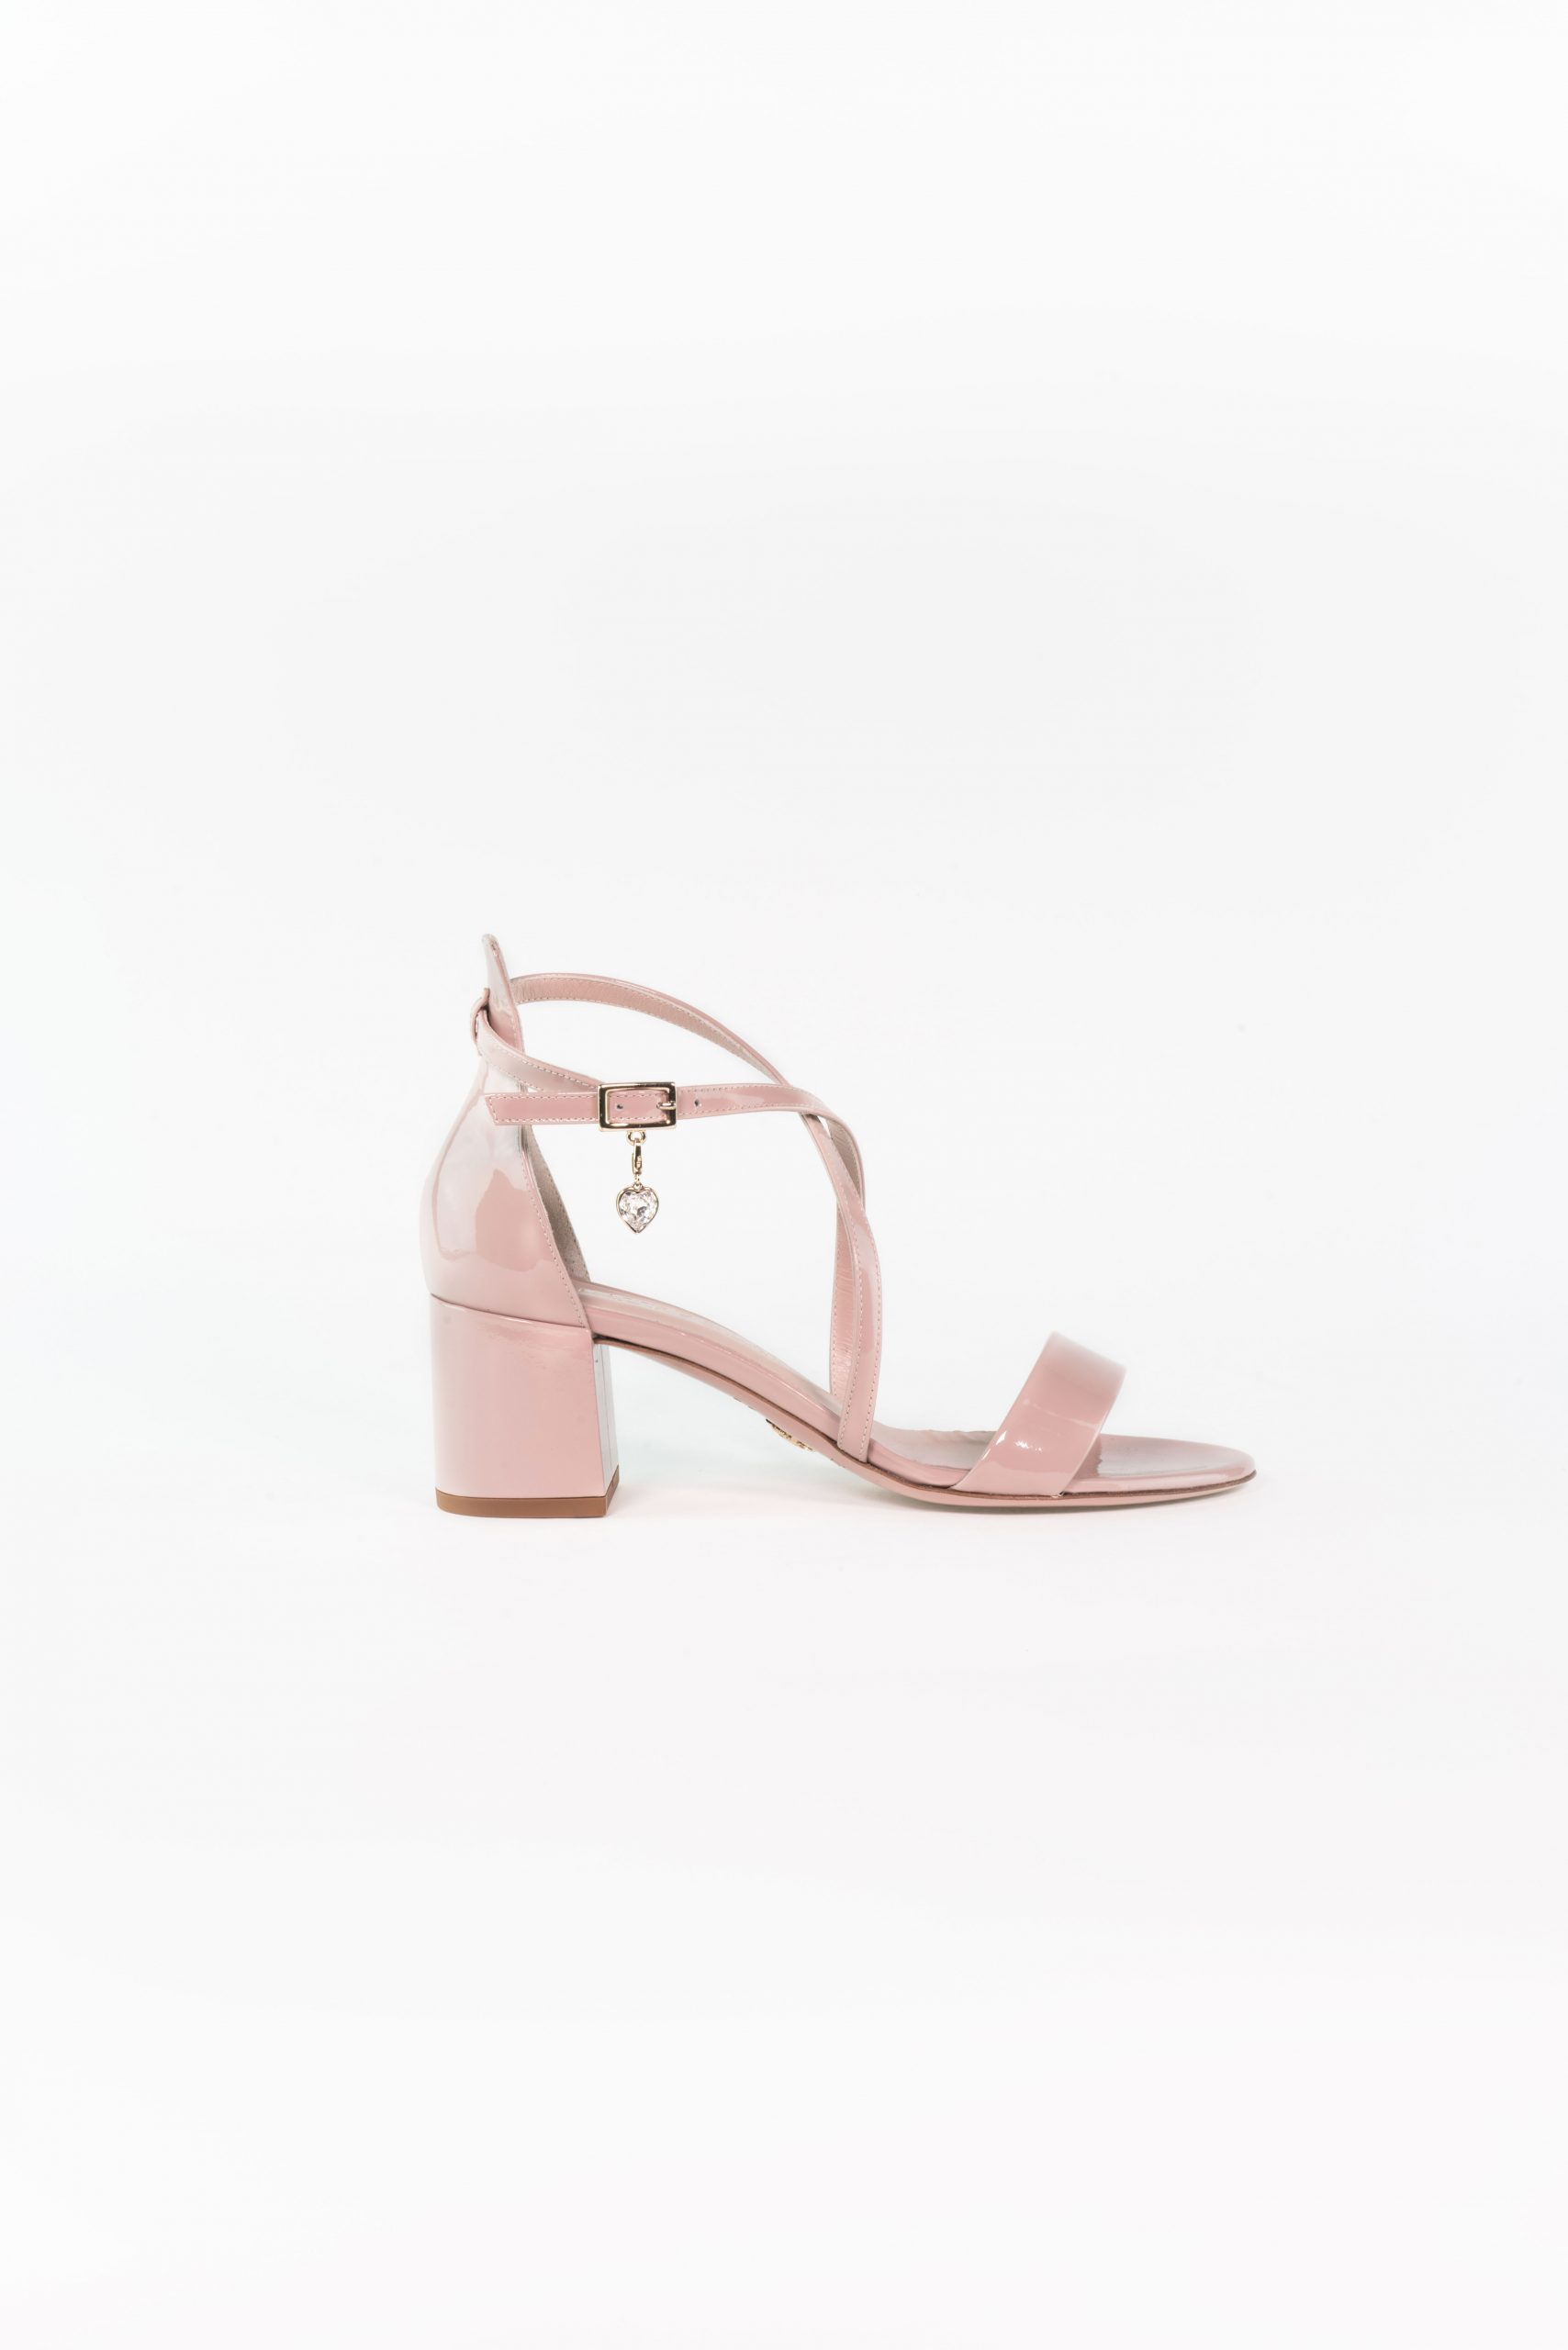 Emilia LL Dusty Rose